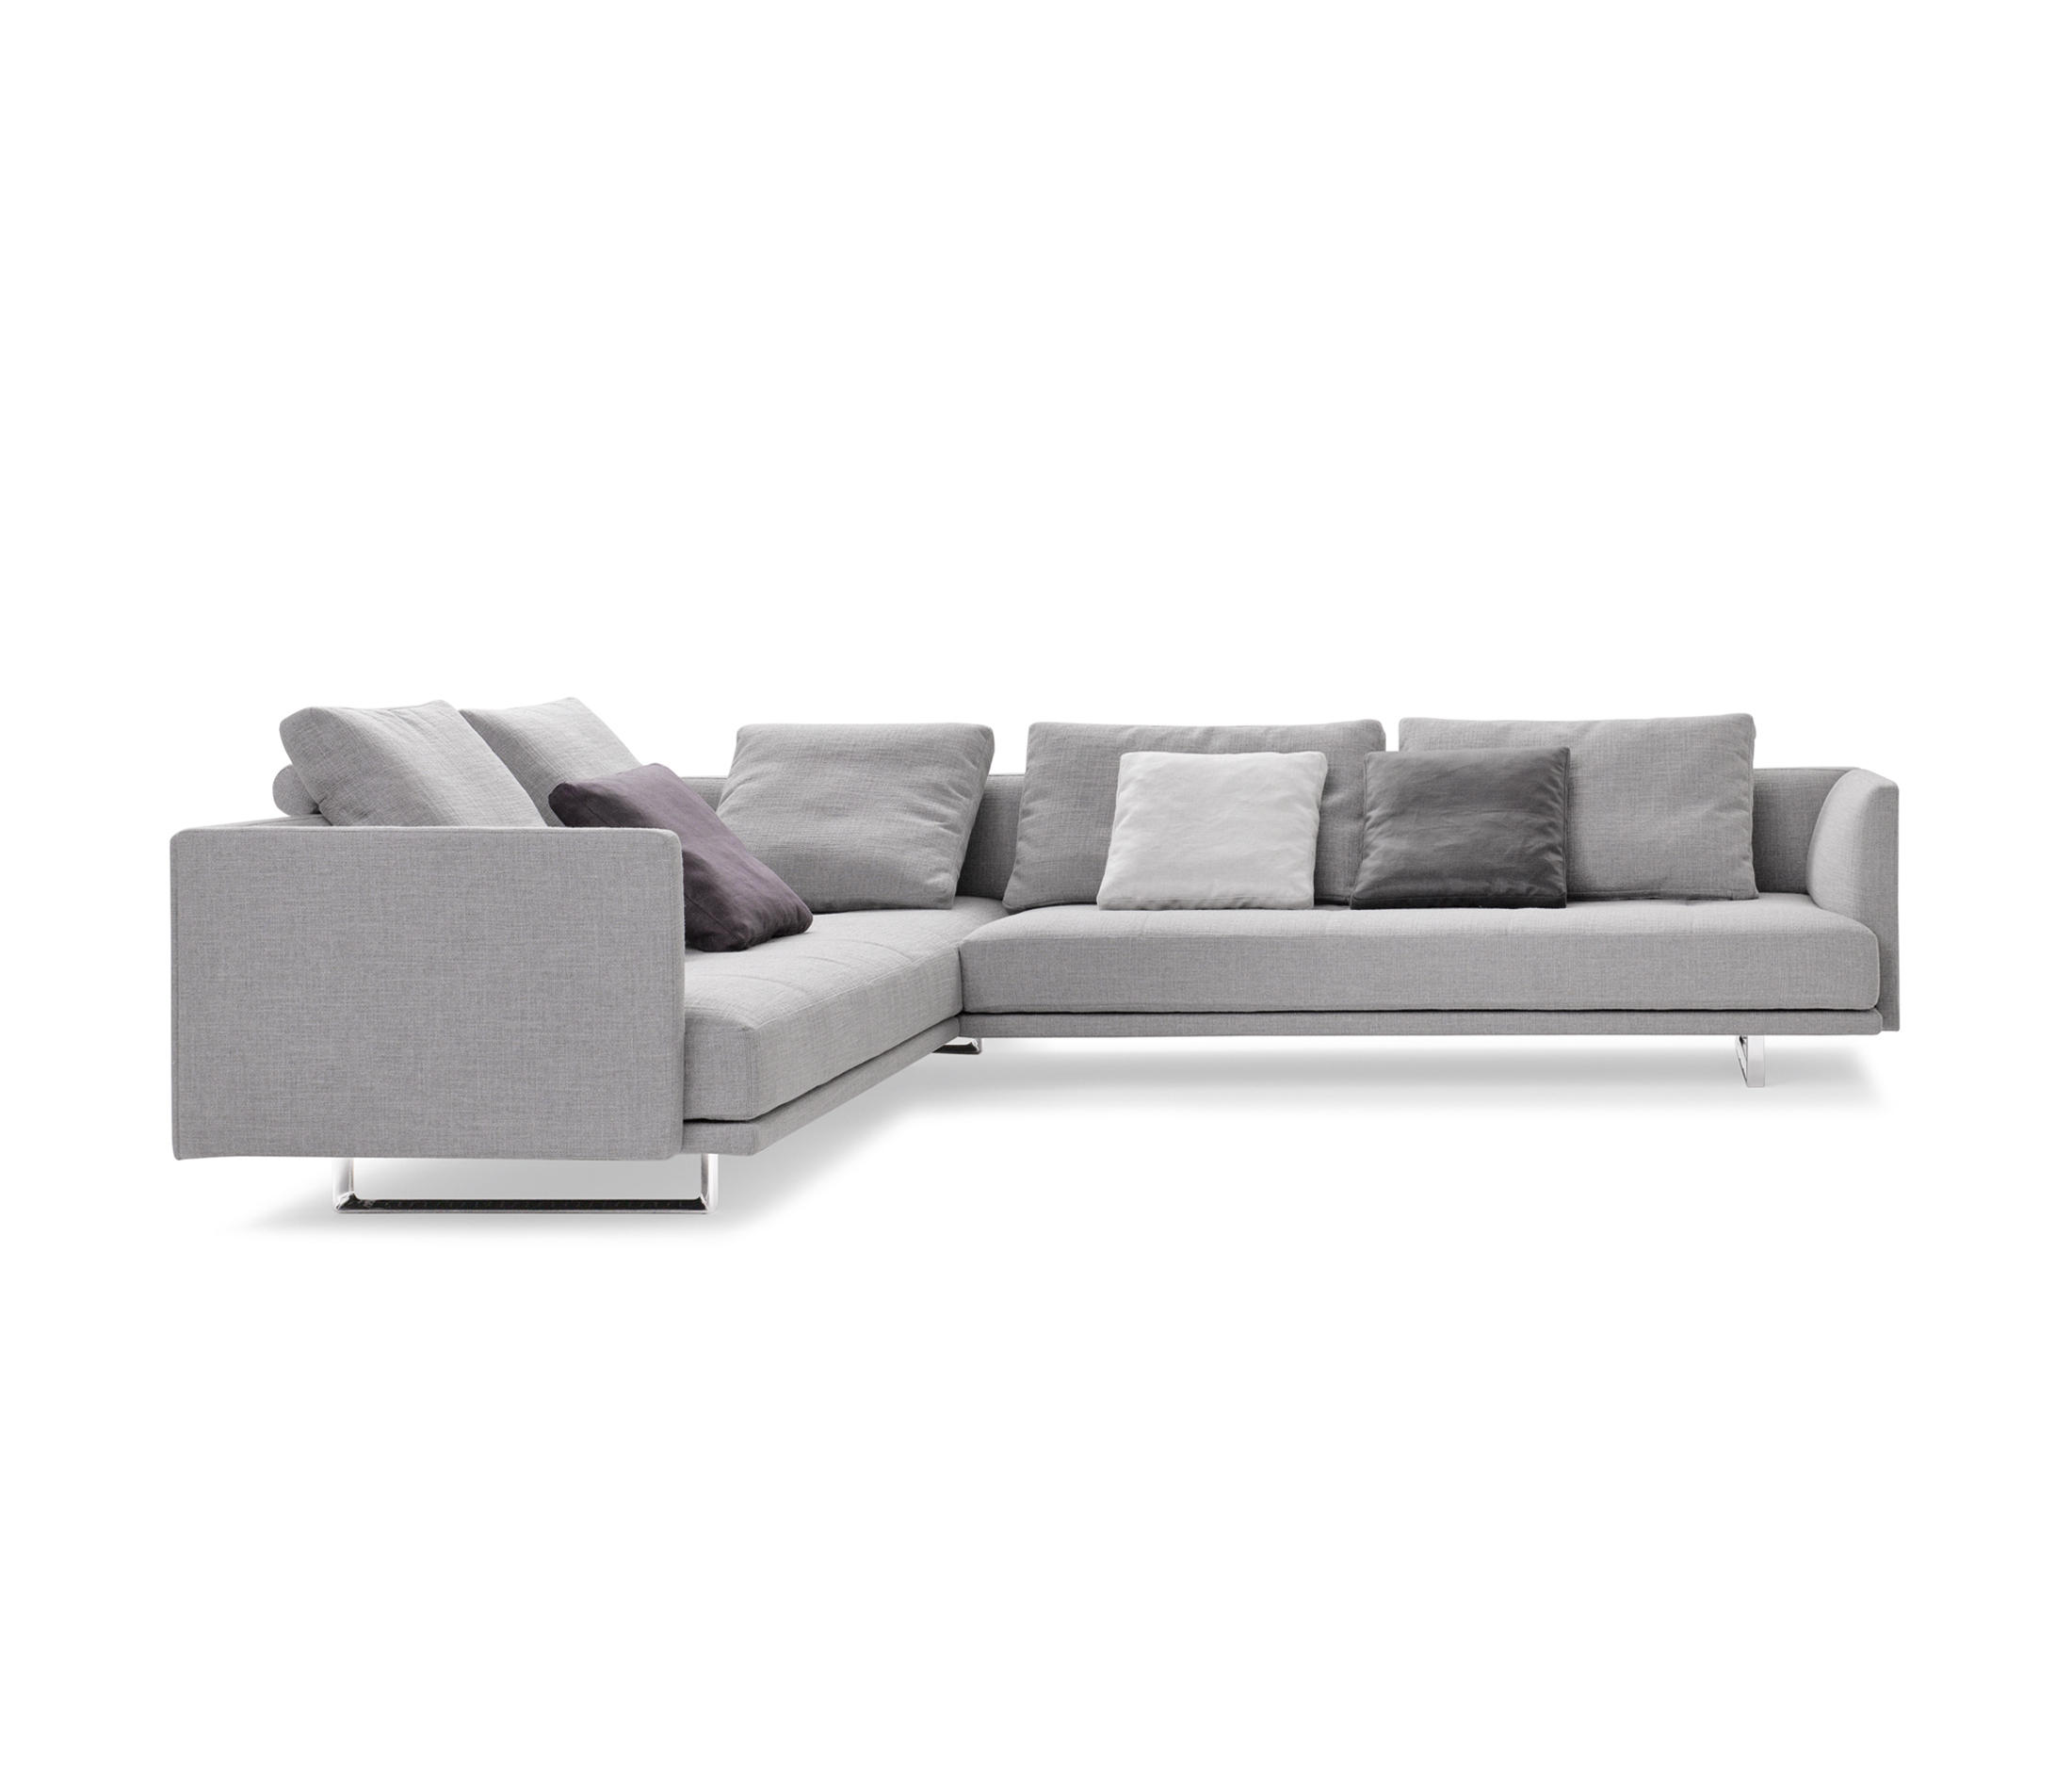 prime time sofa sofas von walter knoll architonic. Black Bedroom Furniture Sets. Home Design Ideas